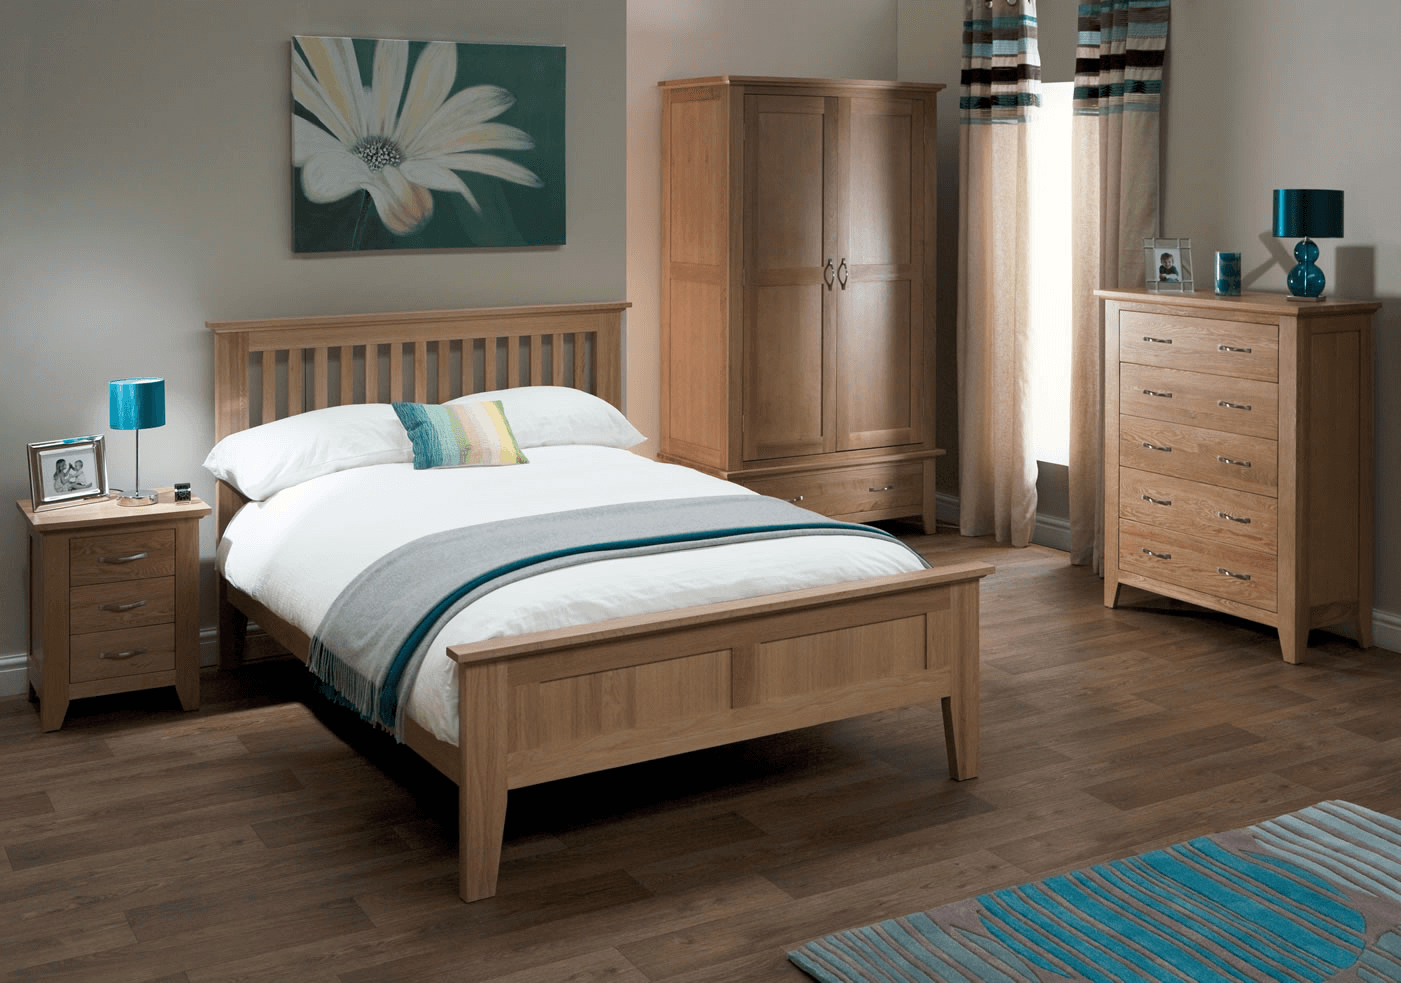 Oak Bedroom Furniture Decorating Ideas and Suggestions